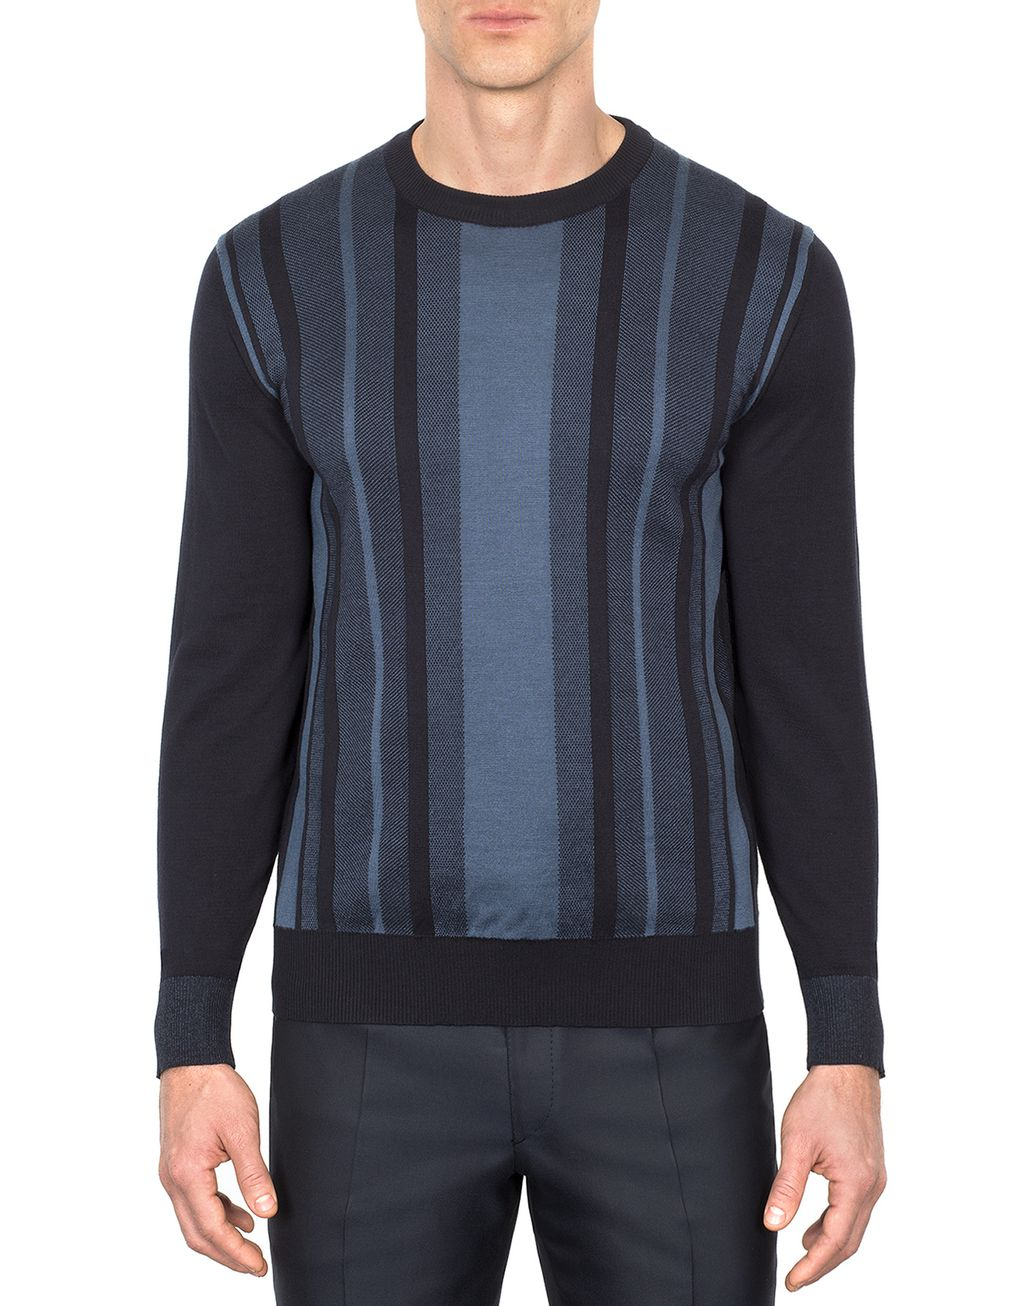 BRIONI Navy Blue Cotton and Silk Striped Sweater with Bicolour Trims Knitwear [*** pickupInStoreShippingNotGuaranteed_info ***] r